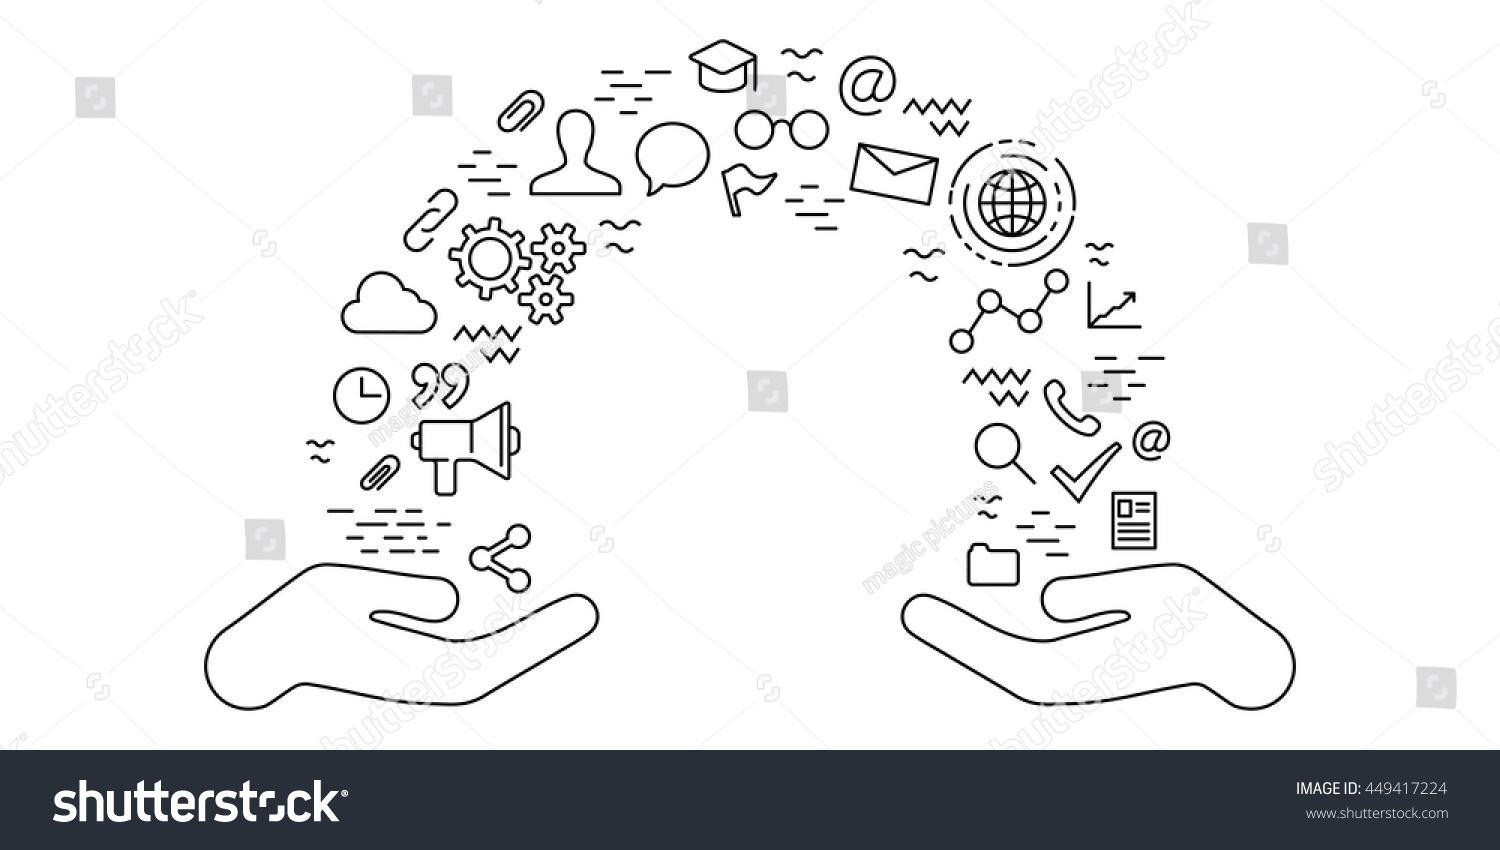 Thin line flat design knowledge exchange stock vector 449417224 thin line flat design for knowledge exchange concept with two hands and flow of education symbols biocorpaavc Image collections